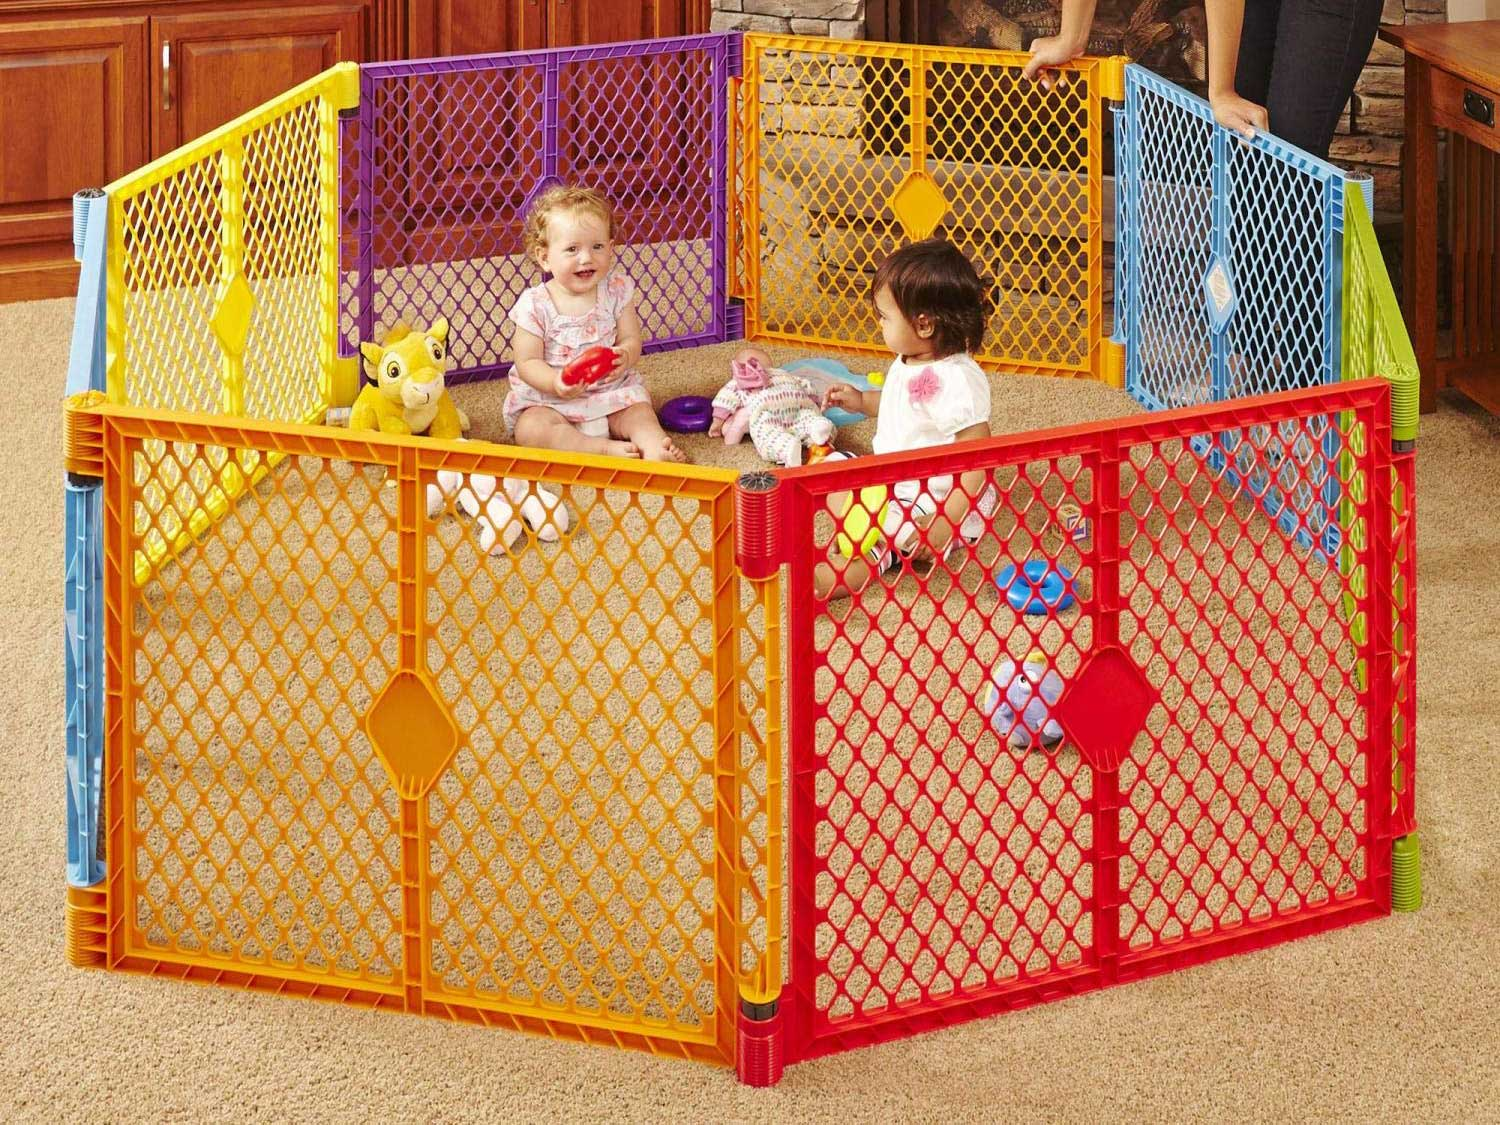 Toddleroo by North States Superyard Colorplay 8 Panel Baby Play Yard: Safe play area anywhere. Folds up with carrying strap for easy travel. Freestanding. 34.4 sq. ft. enclosure (26